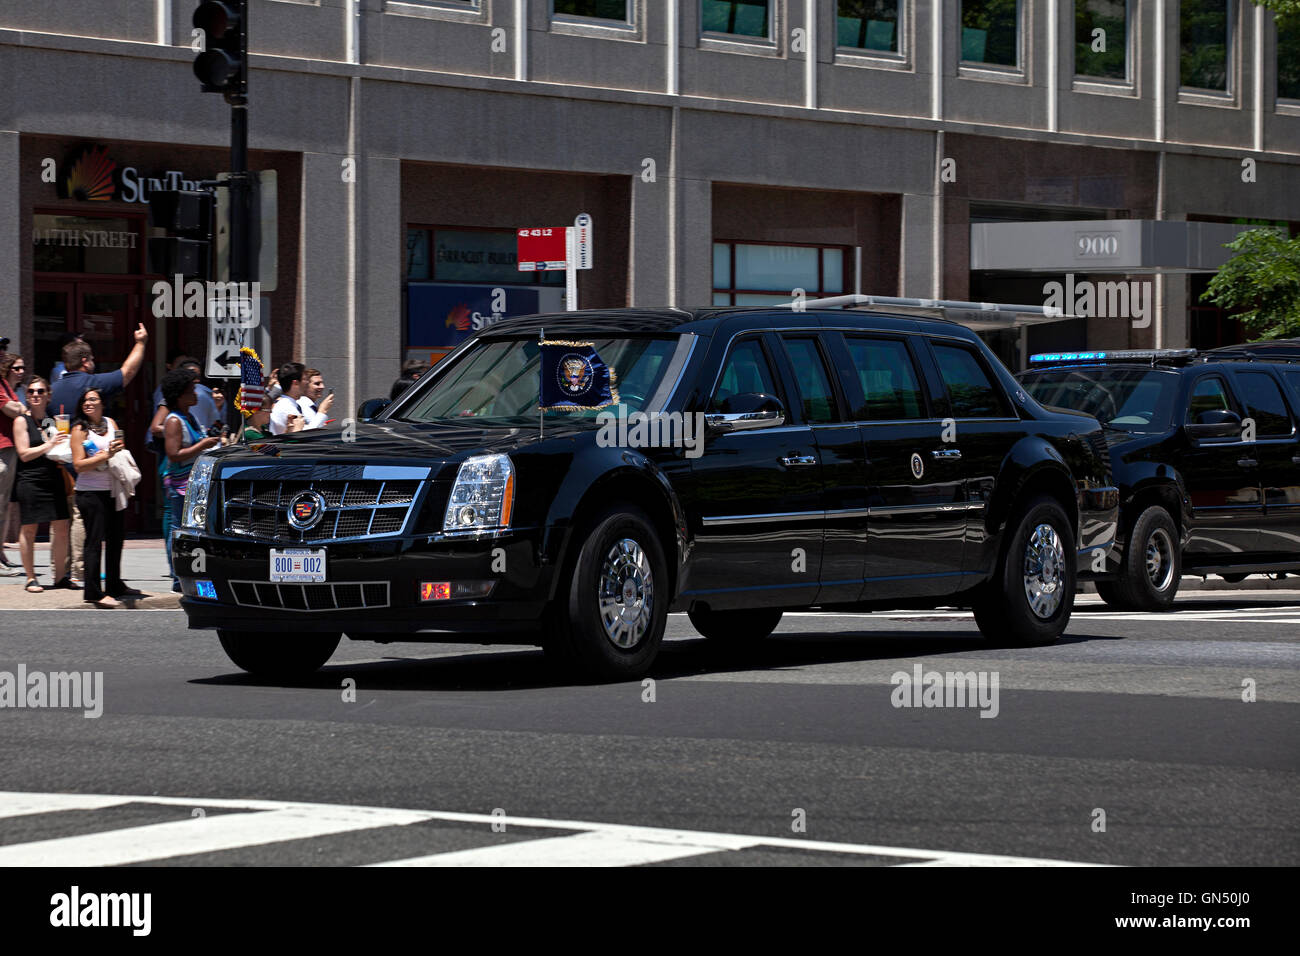 obama administration us presidential state car cadillac one stock photo 116280248 alamy. Black Bedroom Furniture Sets. Home Design Ideas